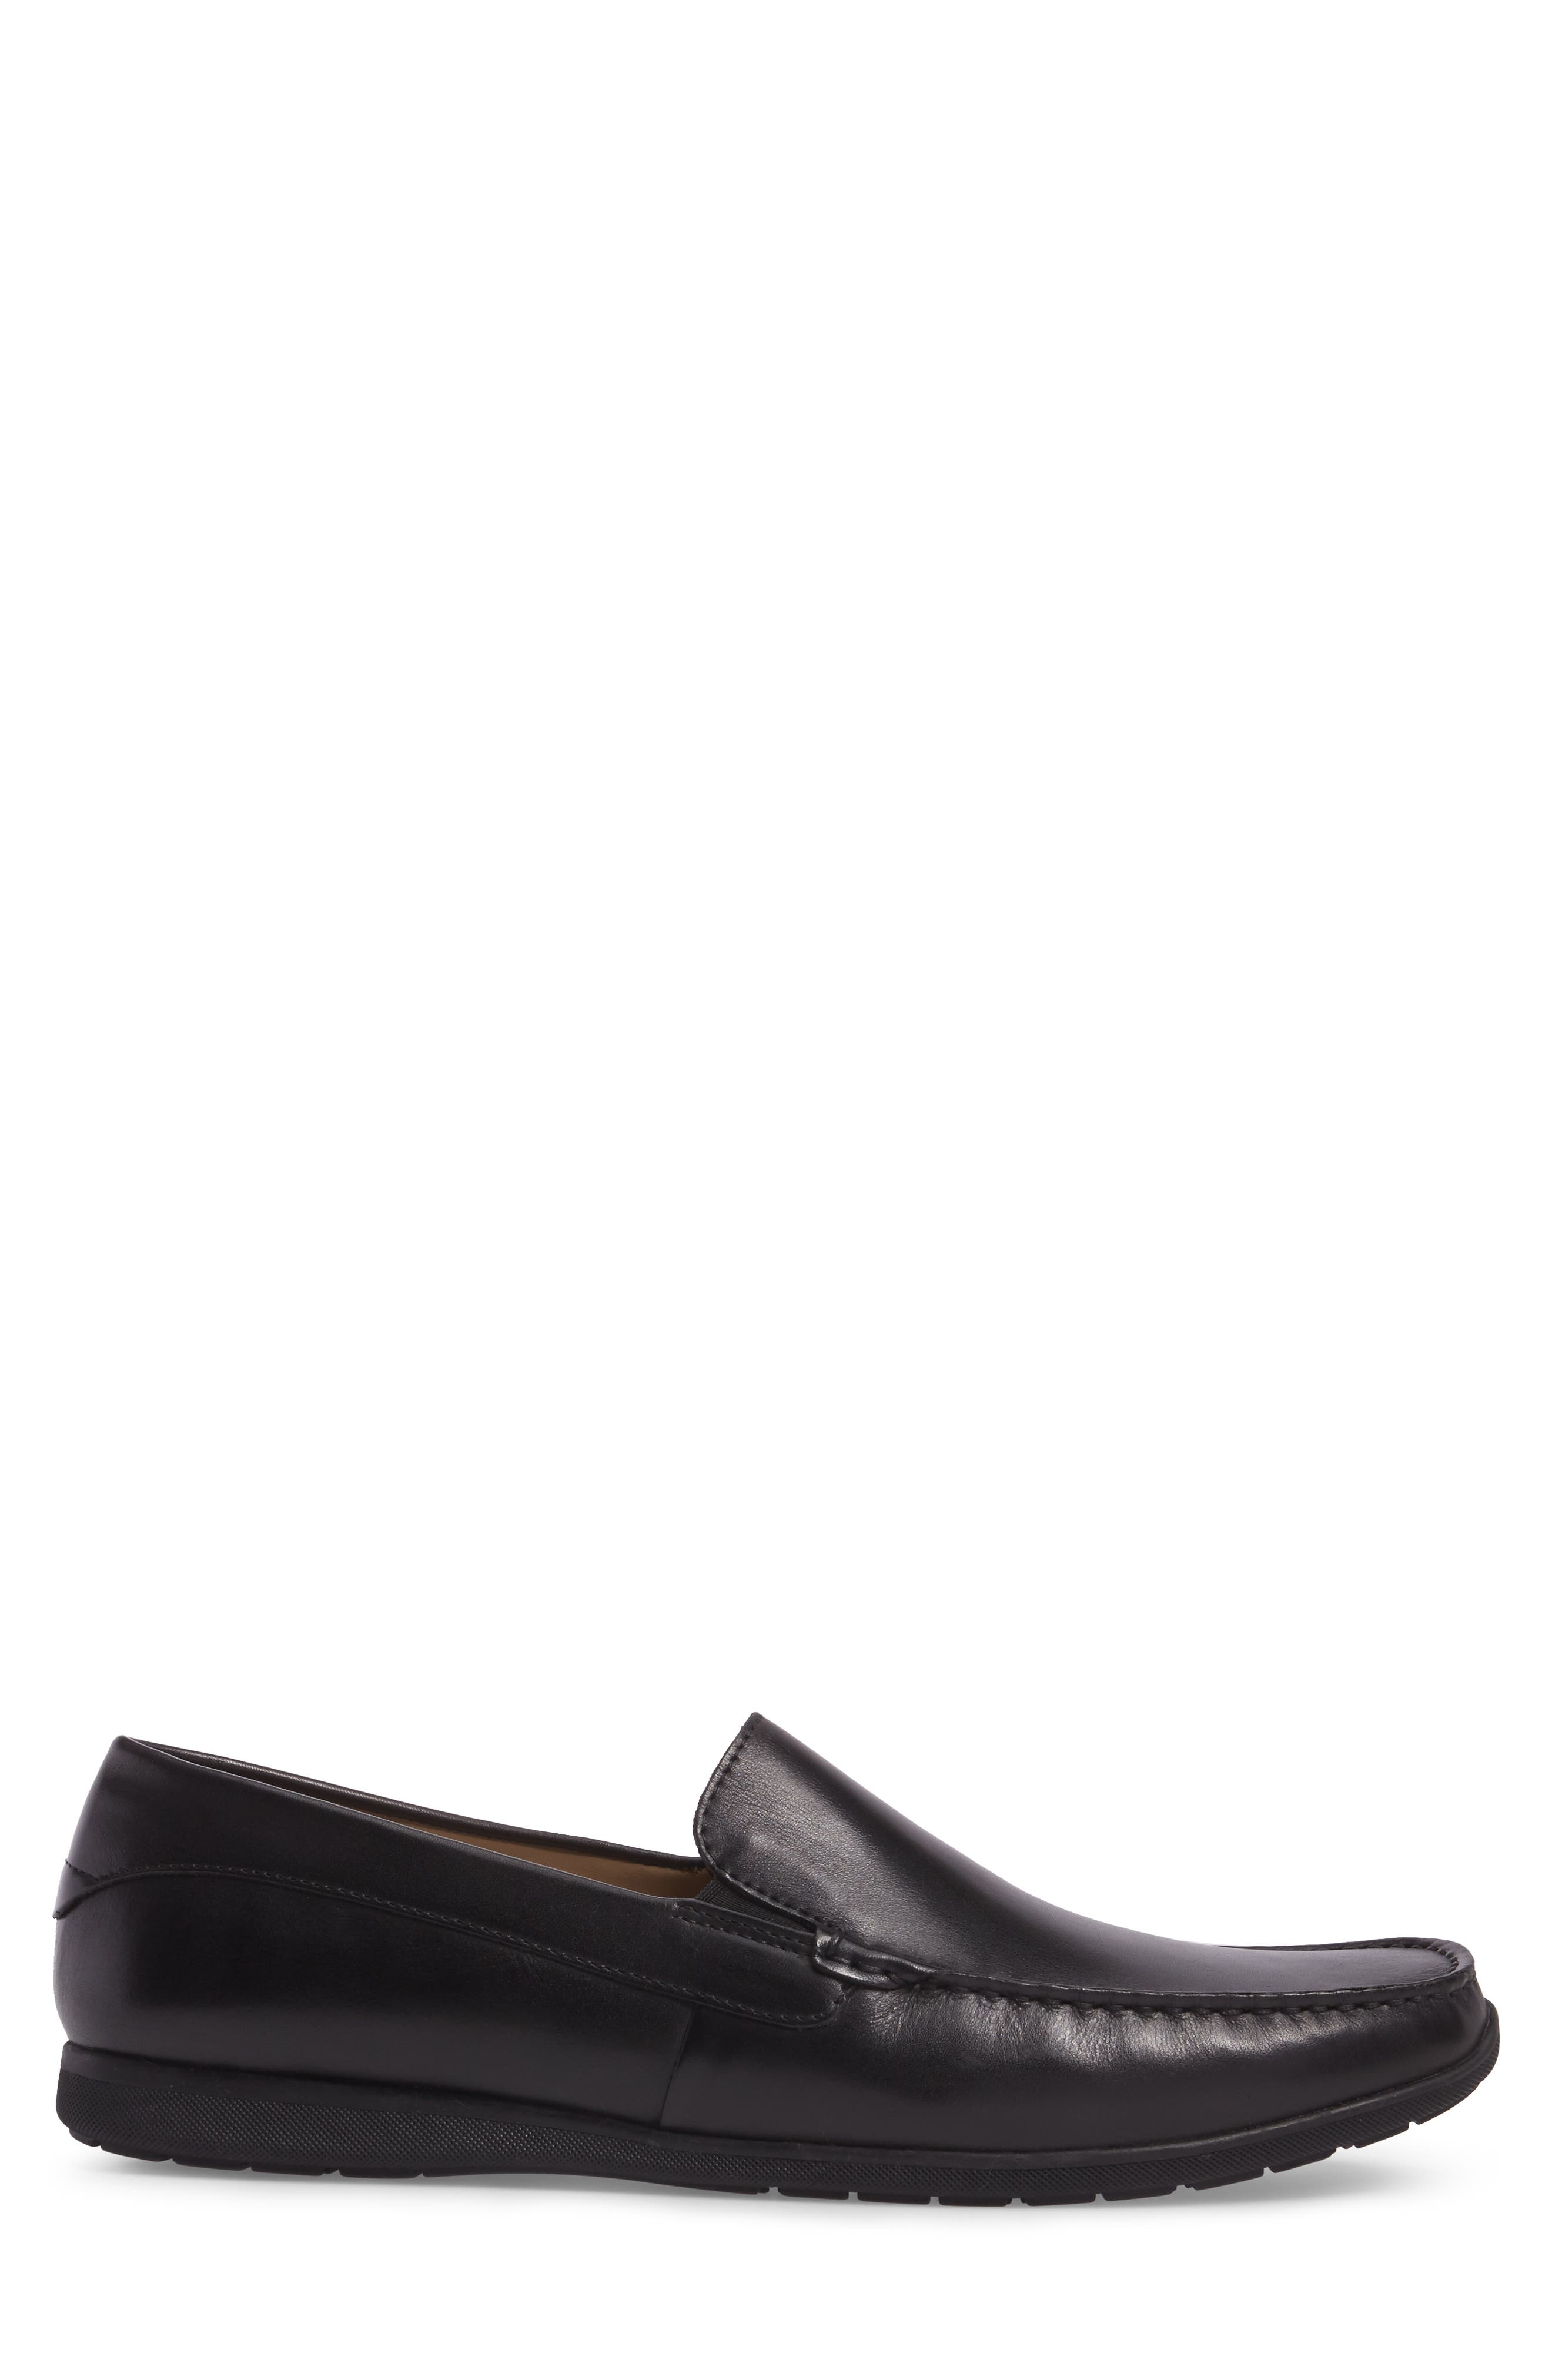 Classic Loafer,                             Alternate thumbnail 3, color,                             Black Leather